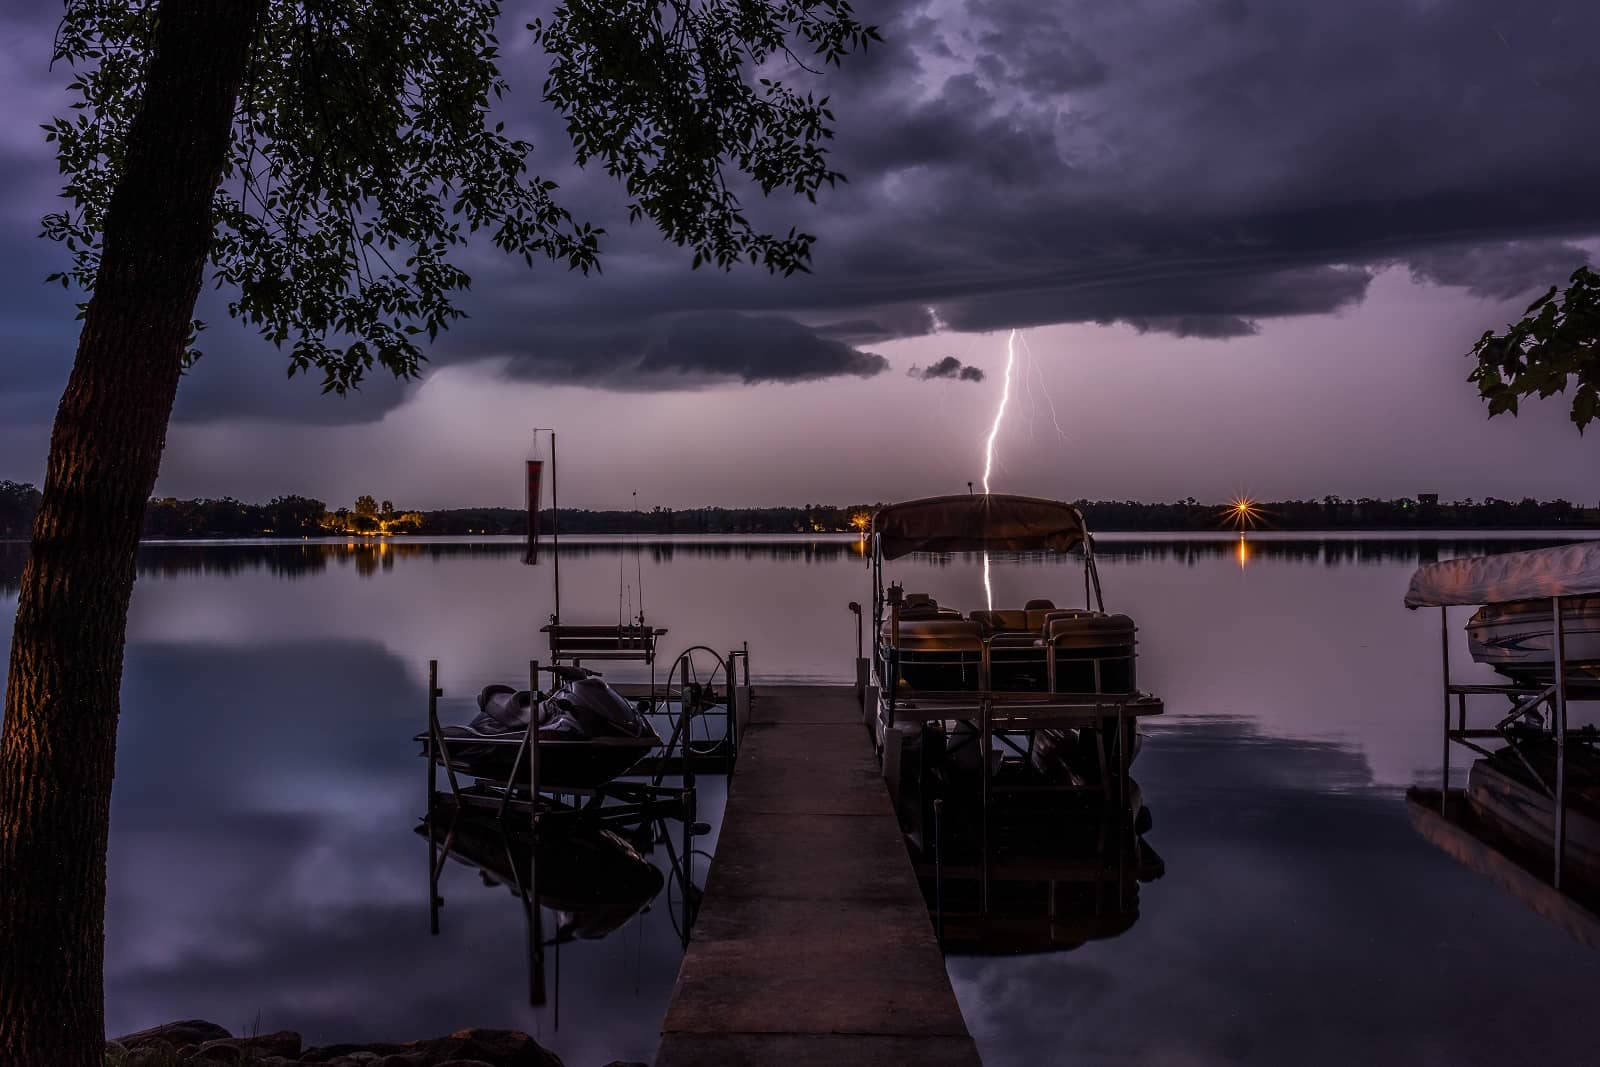 Boat During Lightning Storm